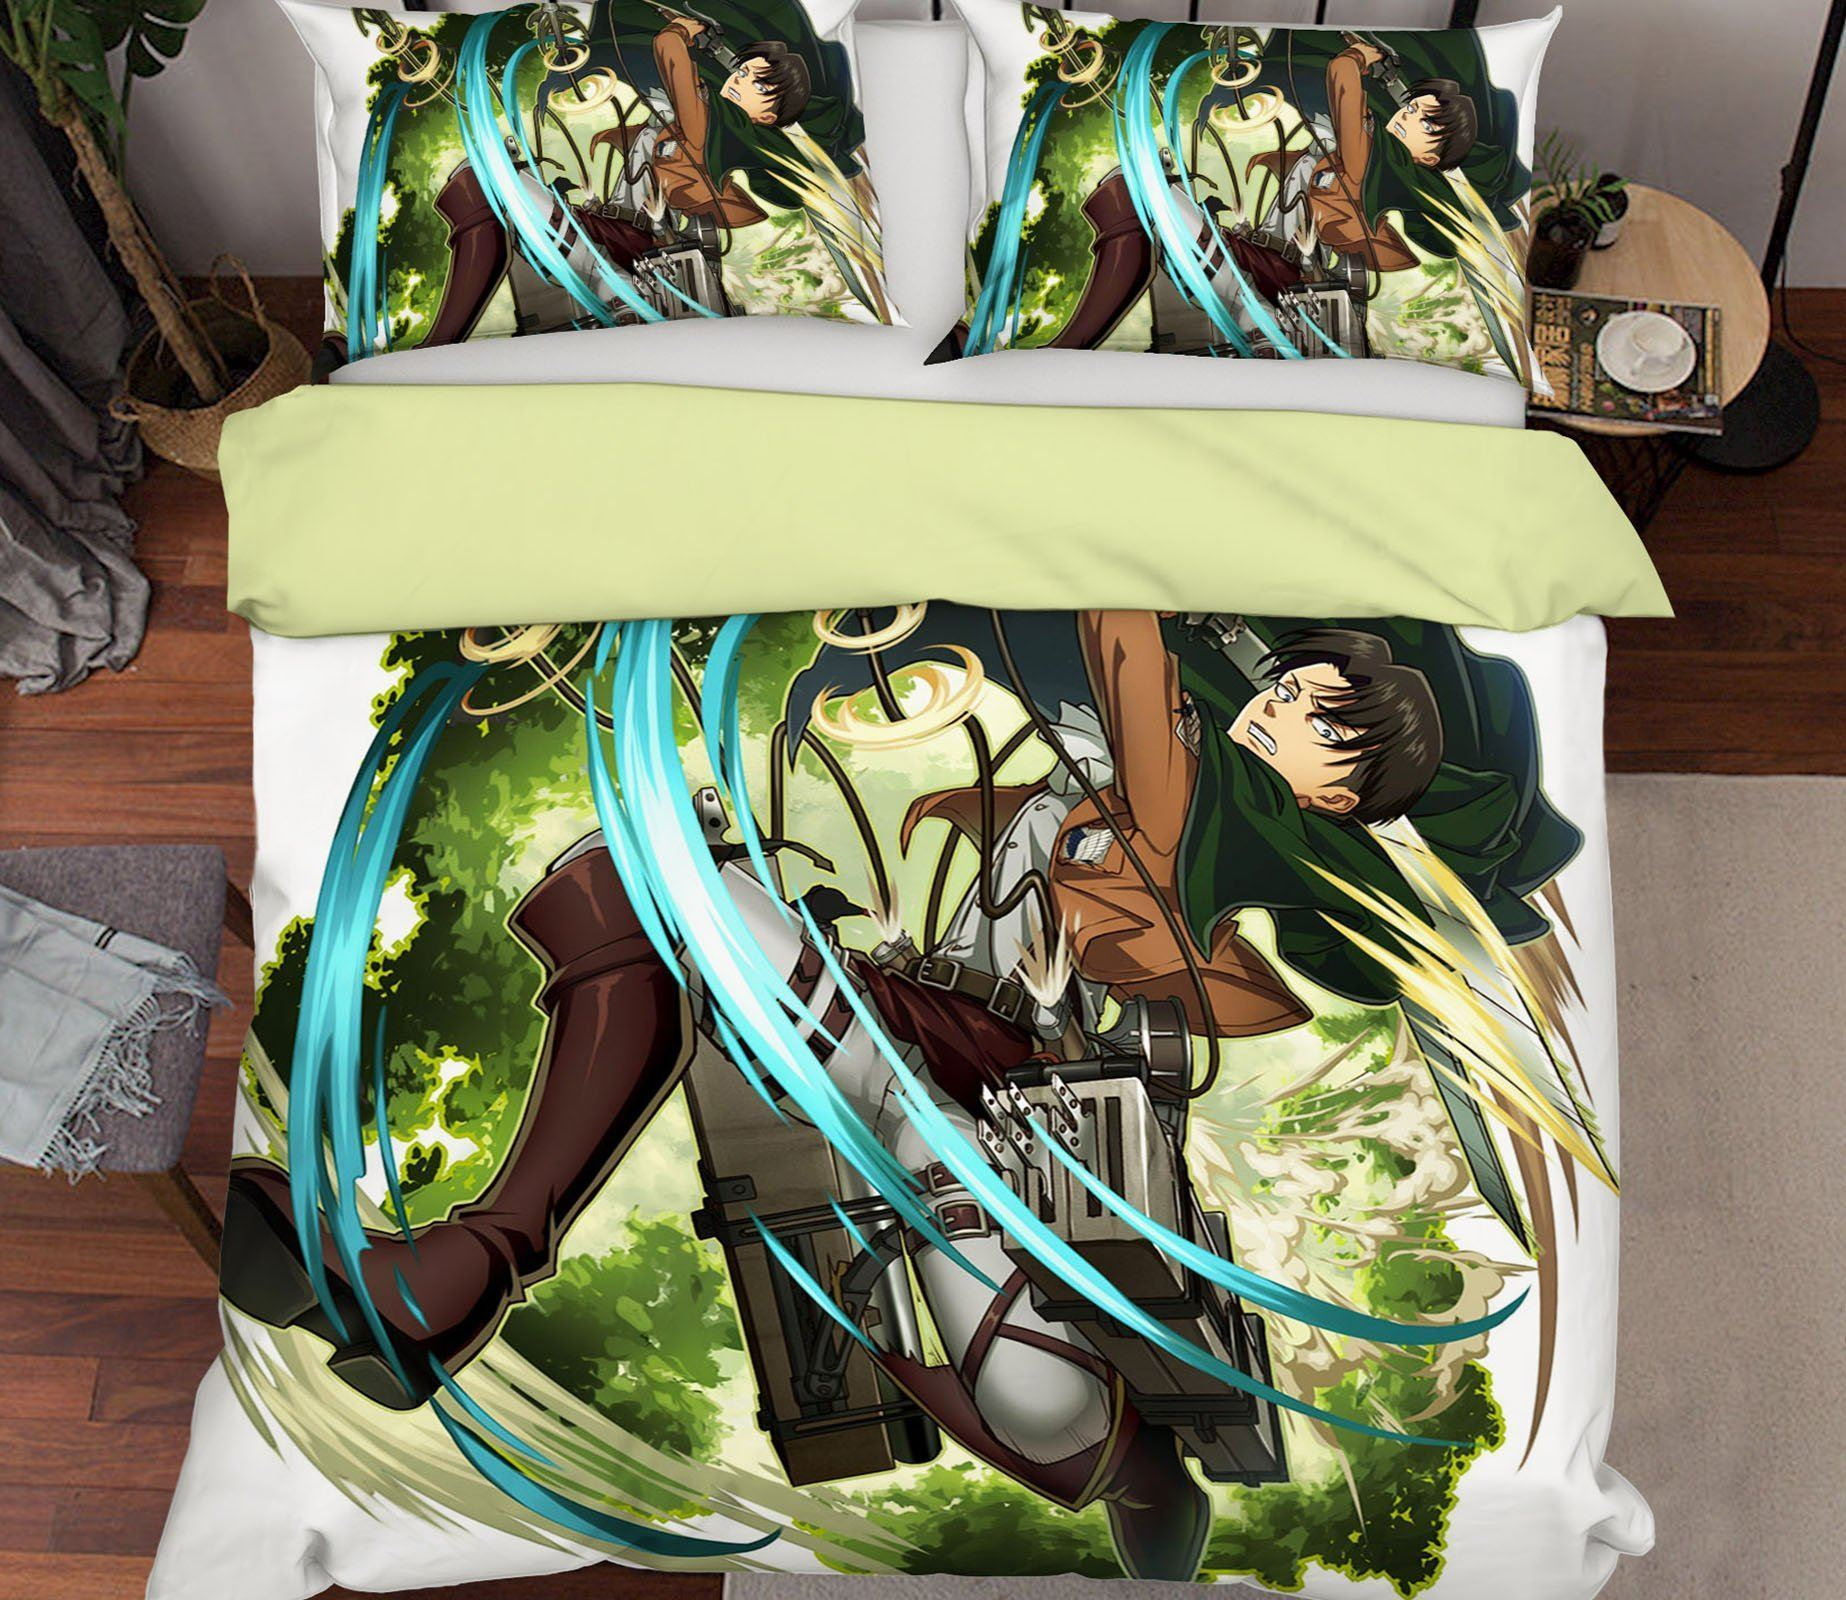 3D Attack On Titan 12 Anime Bed Pillowcases Quilt Quiet Covers AJ Creativity Home